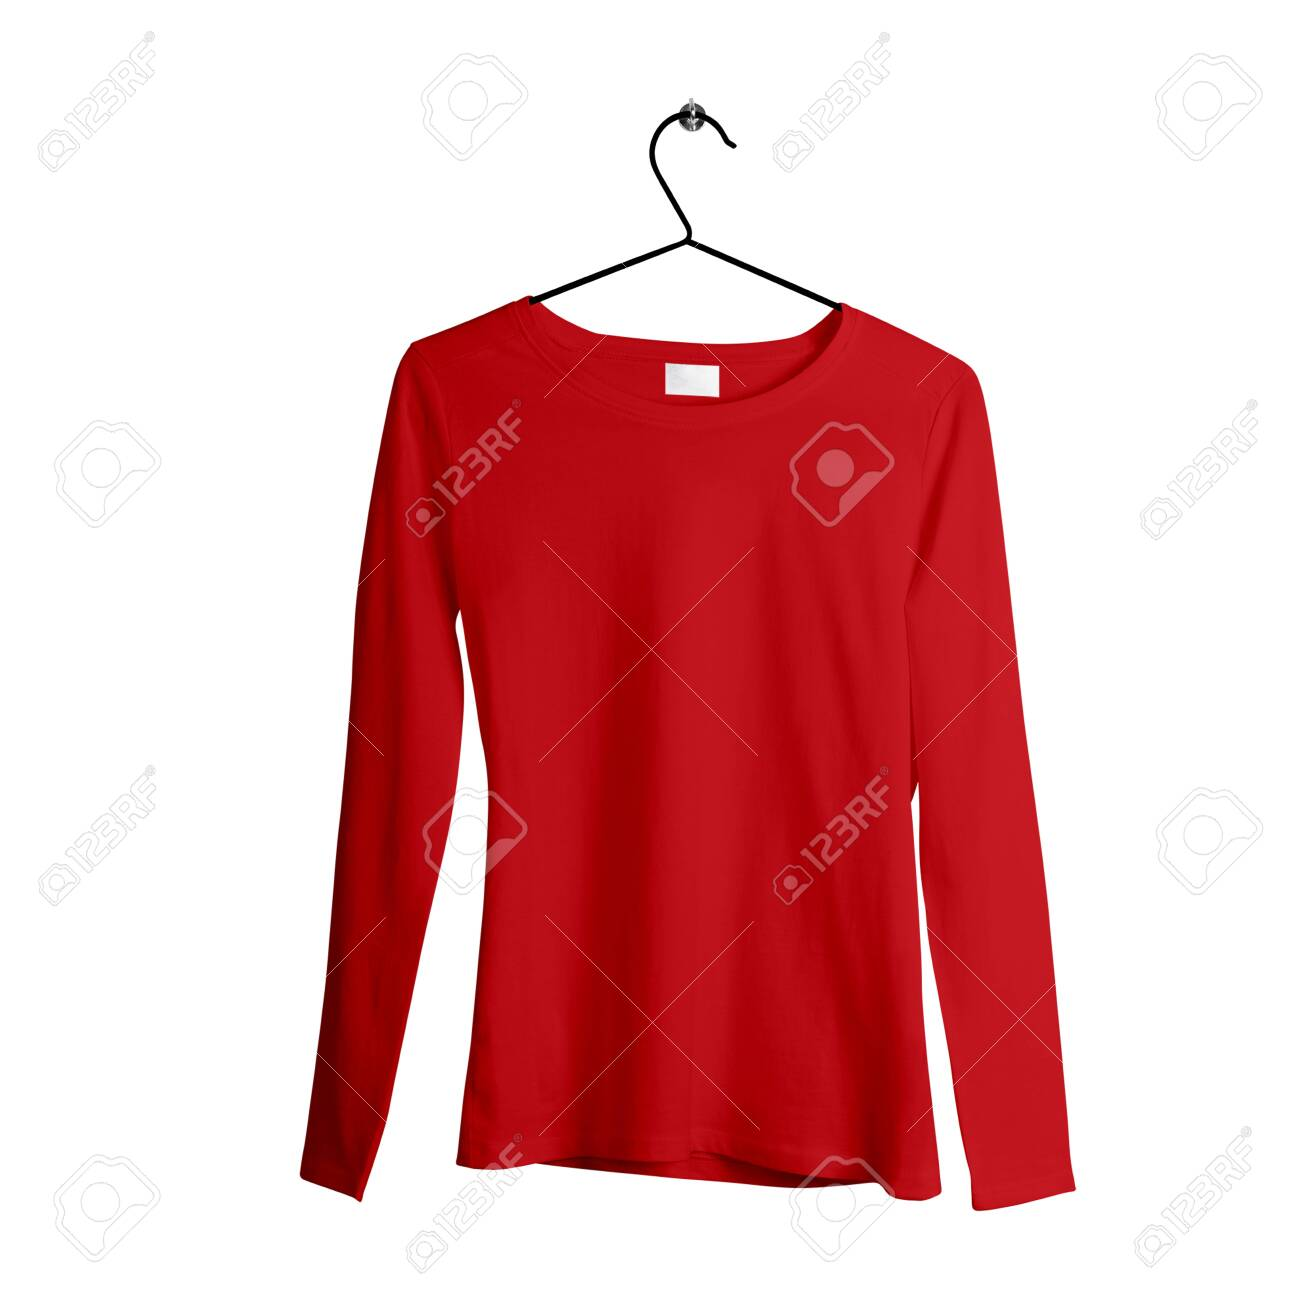 This awesome Front View Female Tshirt Mock Up With Hanger In Flame Scarlet Color is ready to use for showcasing your brand logo. - 142555444